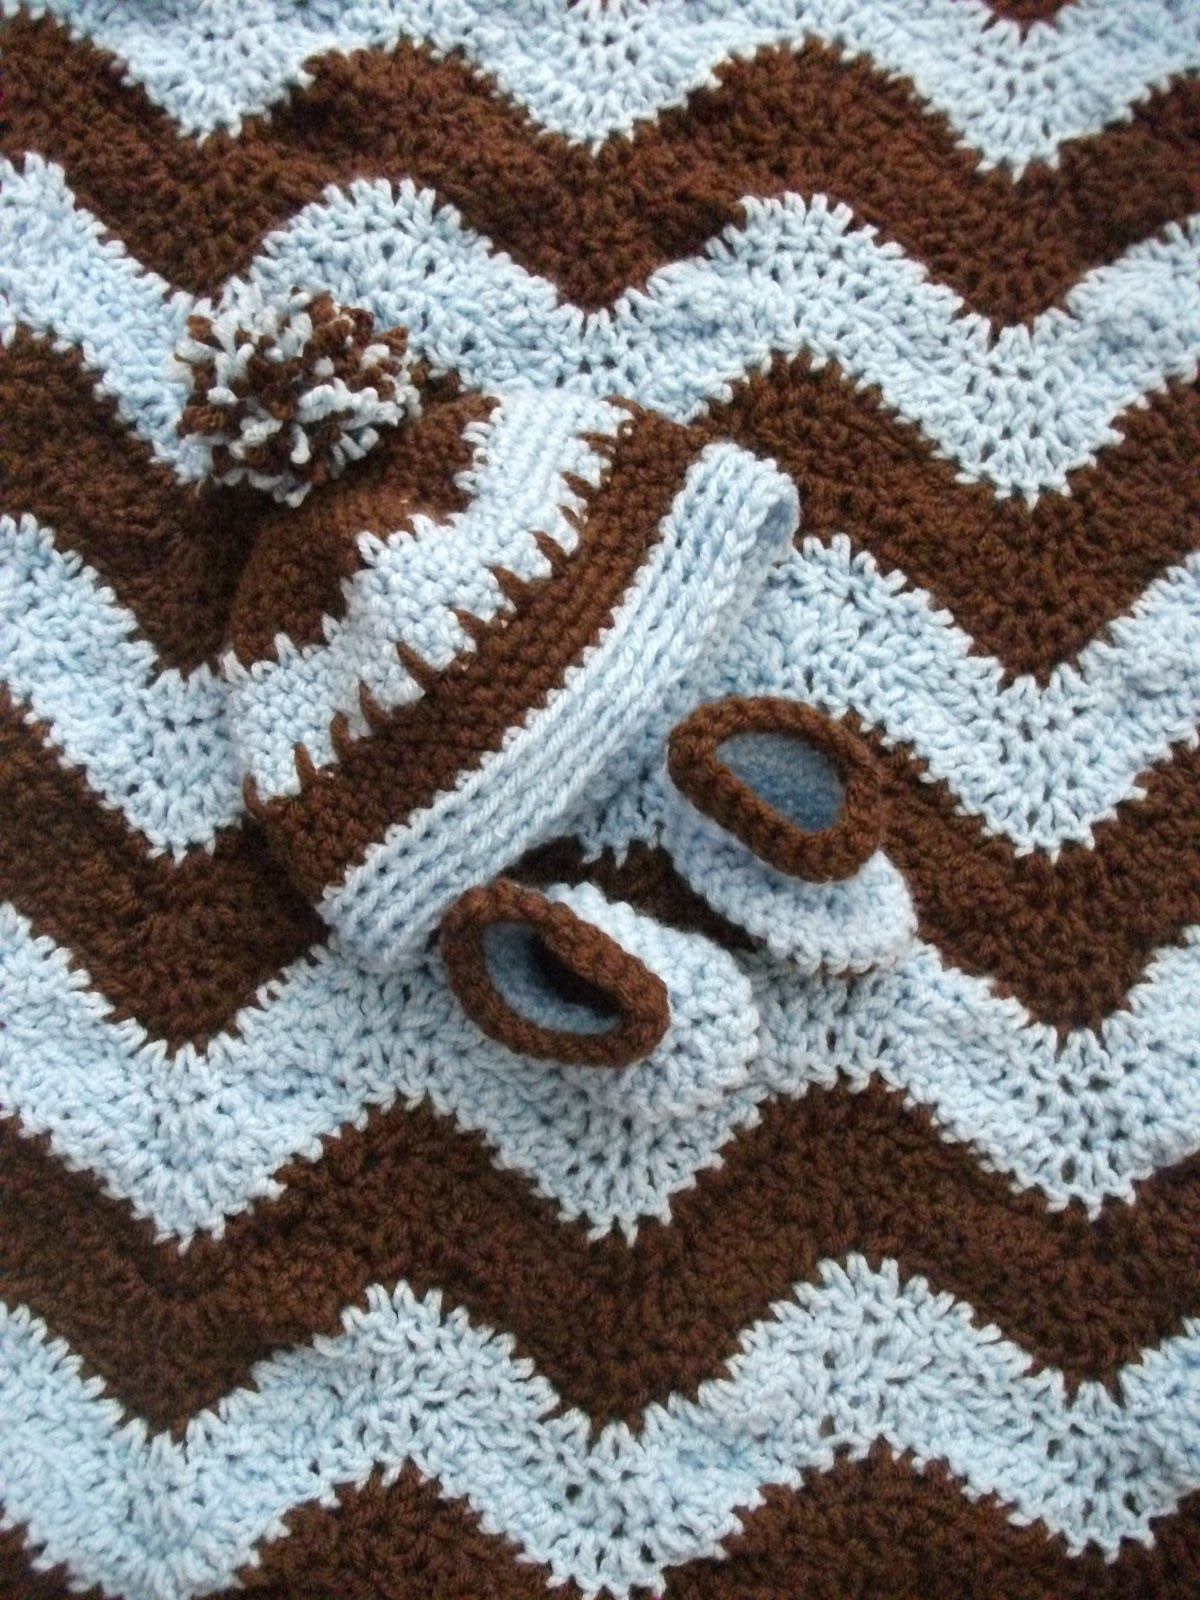 Crochet Vintage Baby Afghan Patterns - Crochet 12 Baby Afghan